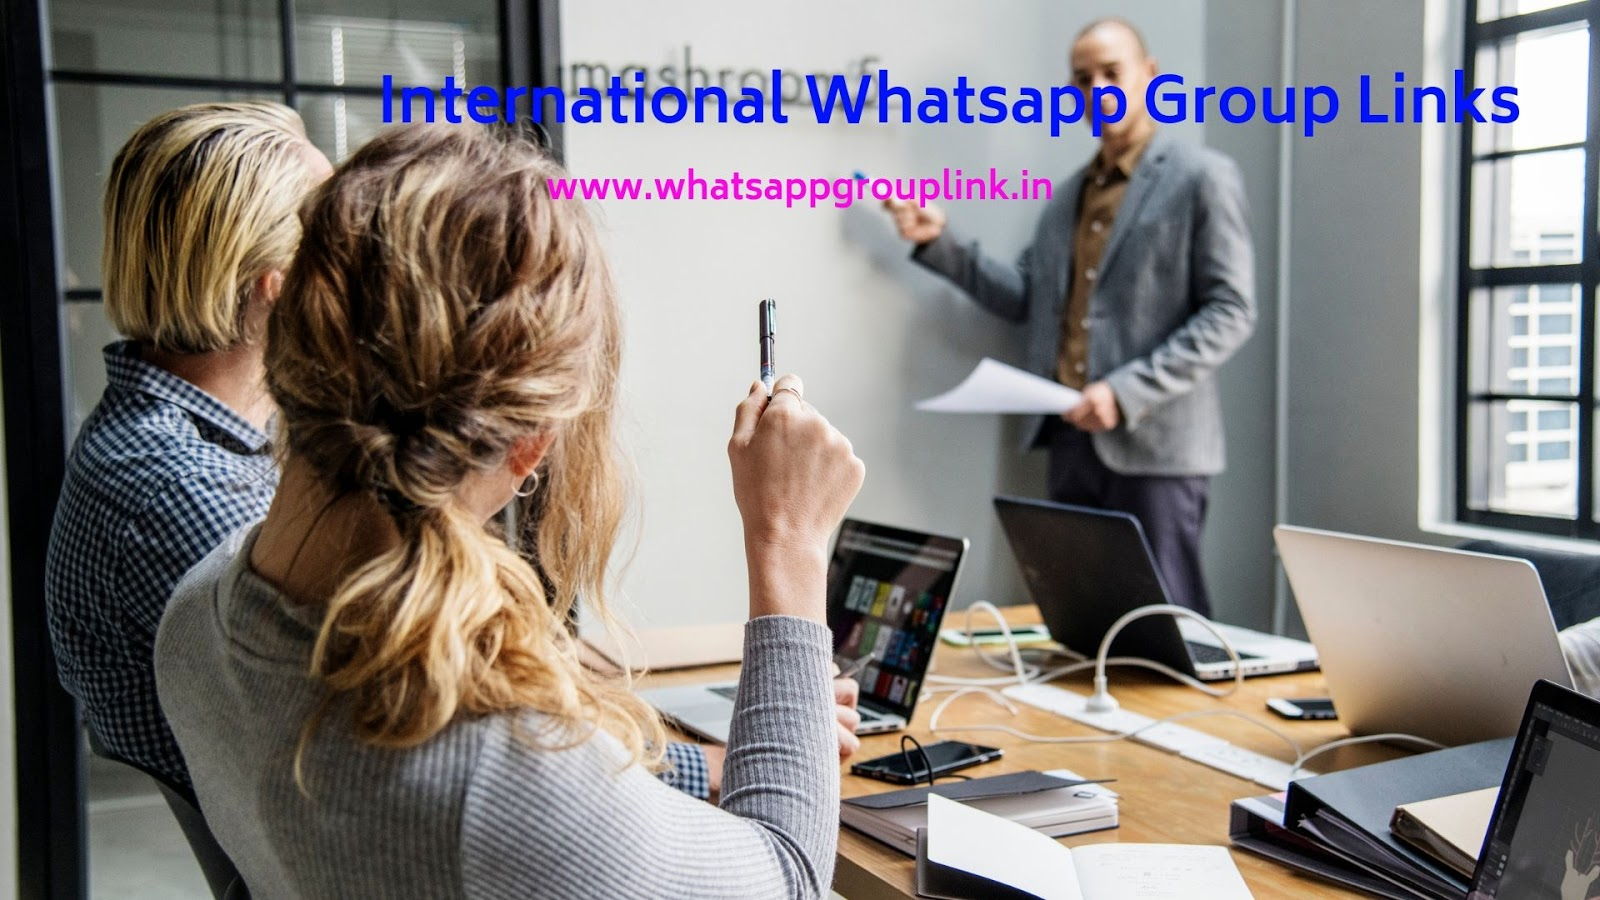 Whatsapp Group Link: Whatsapp Group Link